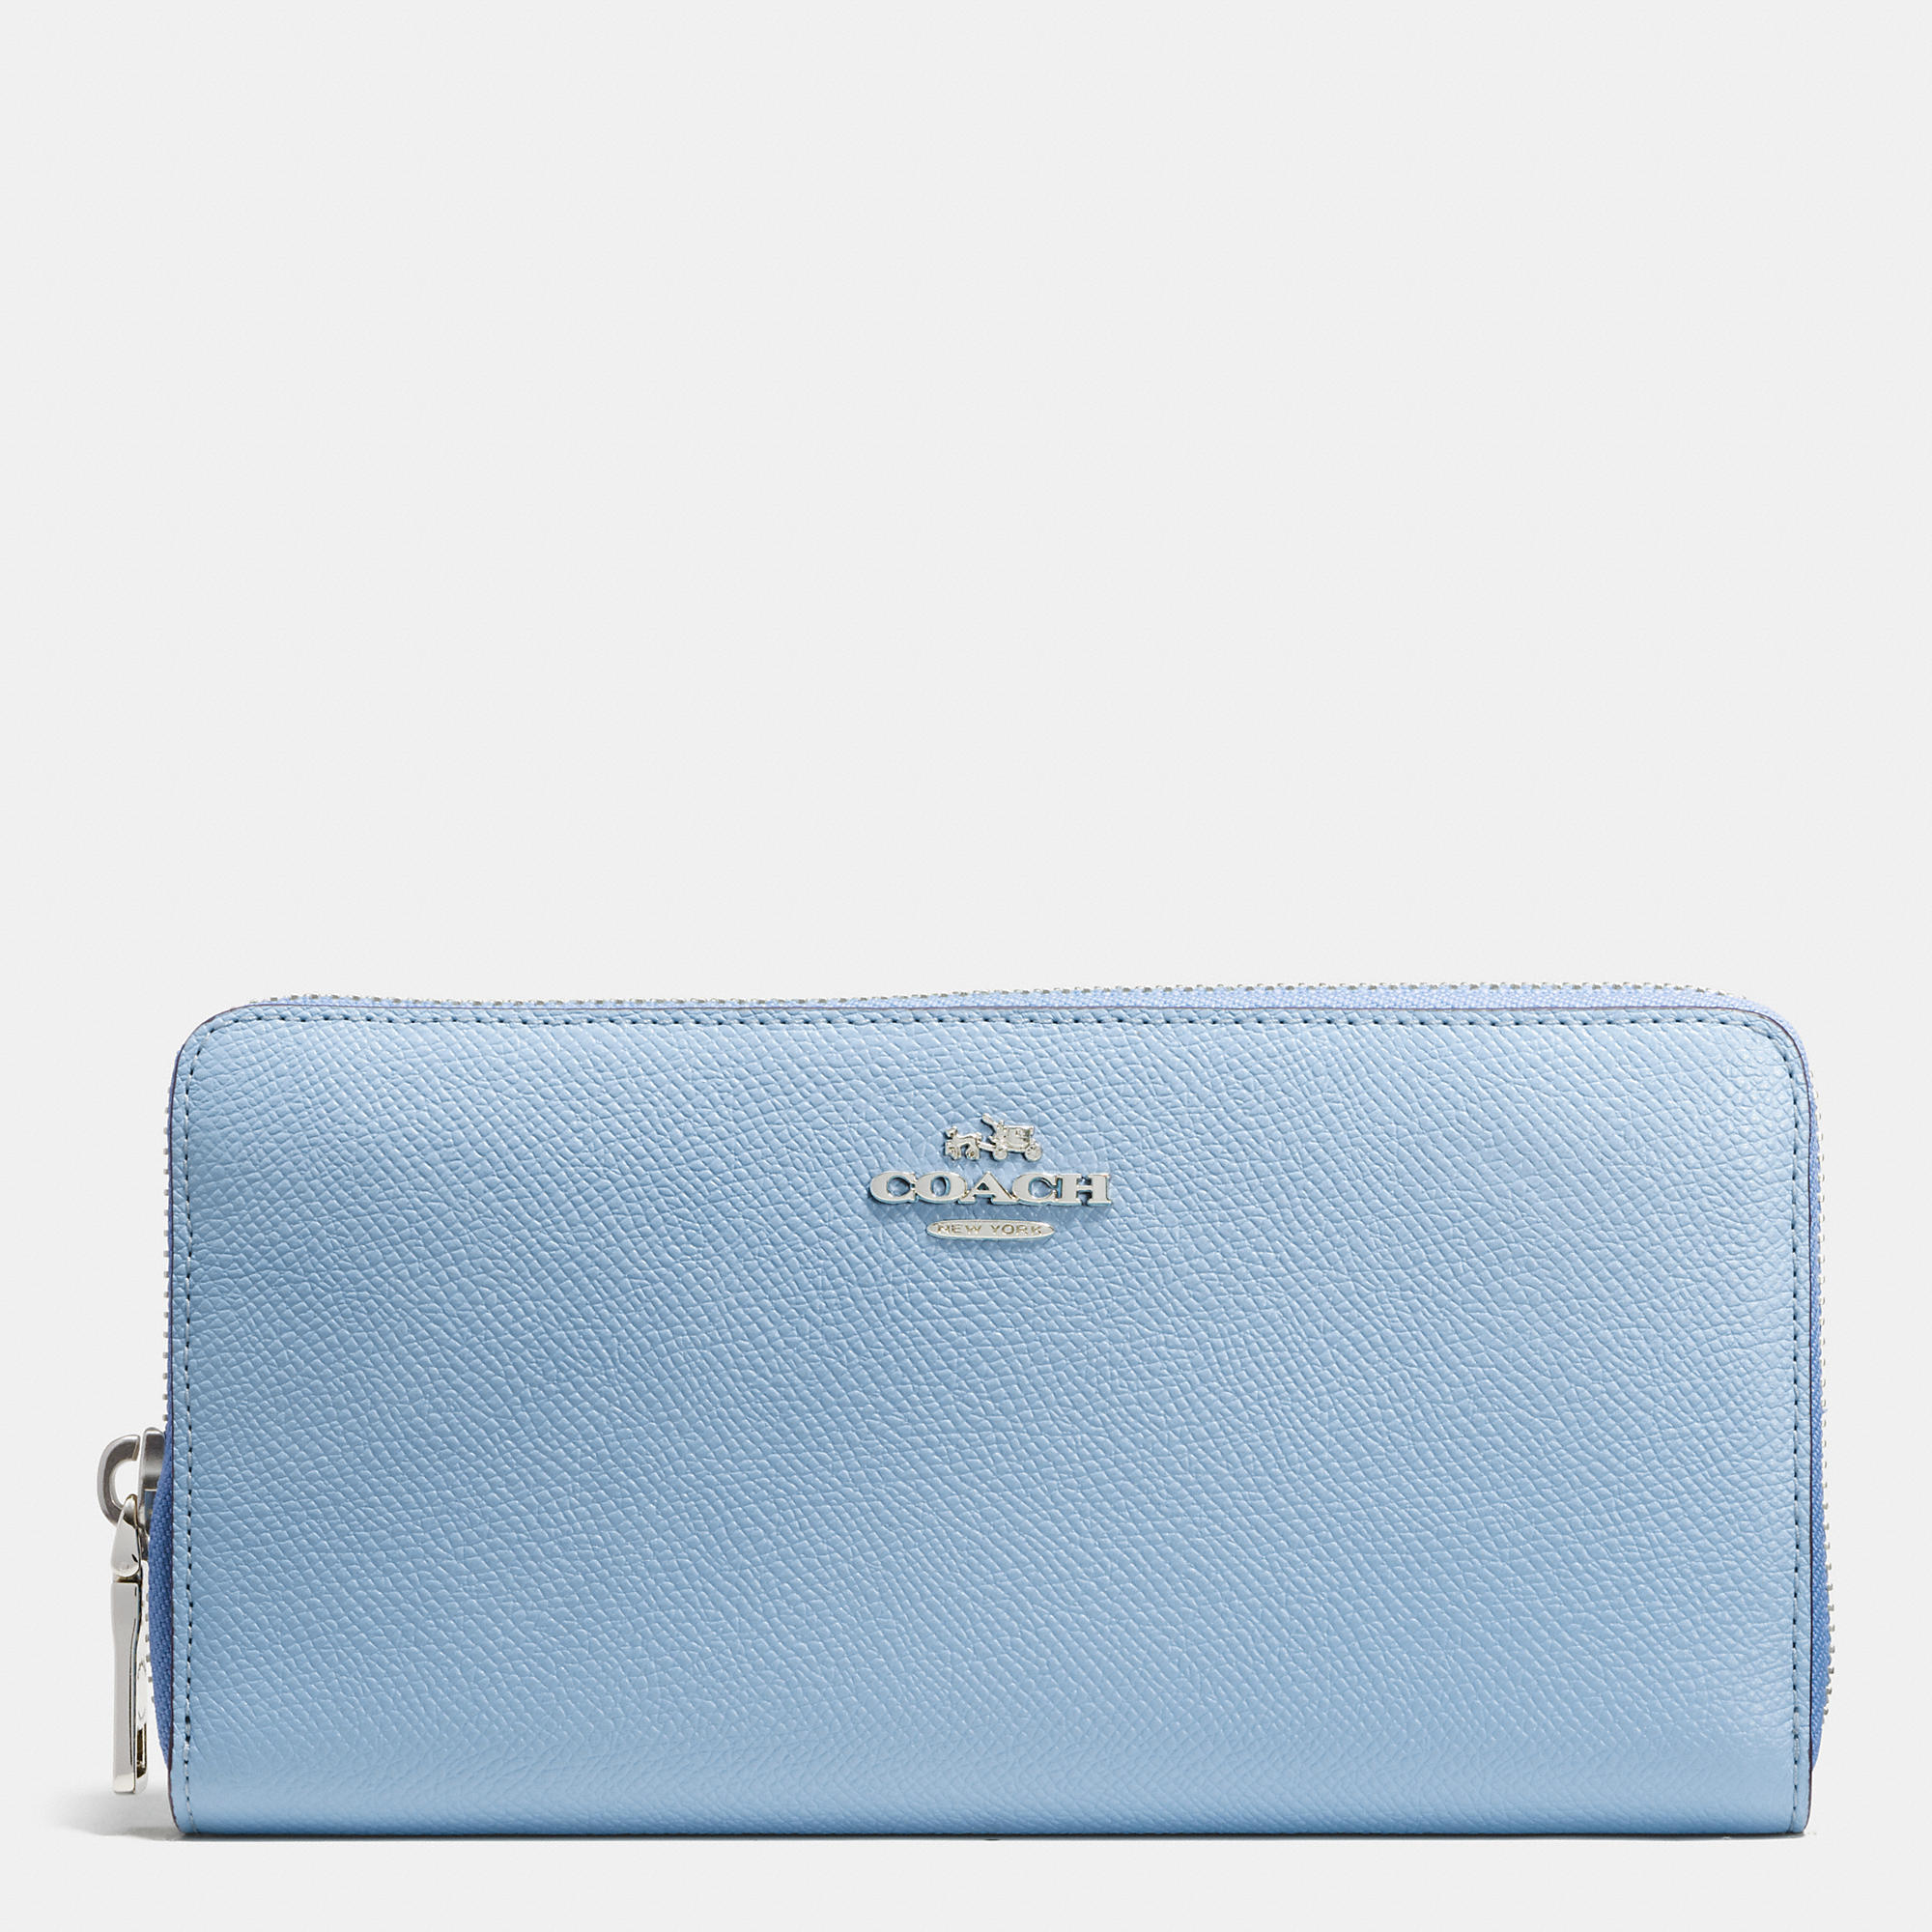 71432bedb77c8 ... france lyst coach accordion zip wallet in colorblock crossgrain leather  8e418 8d466